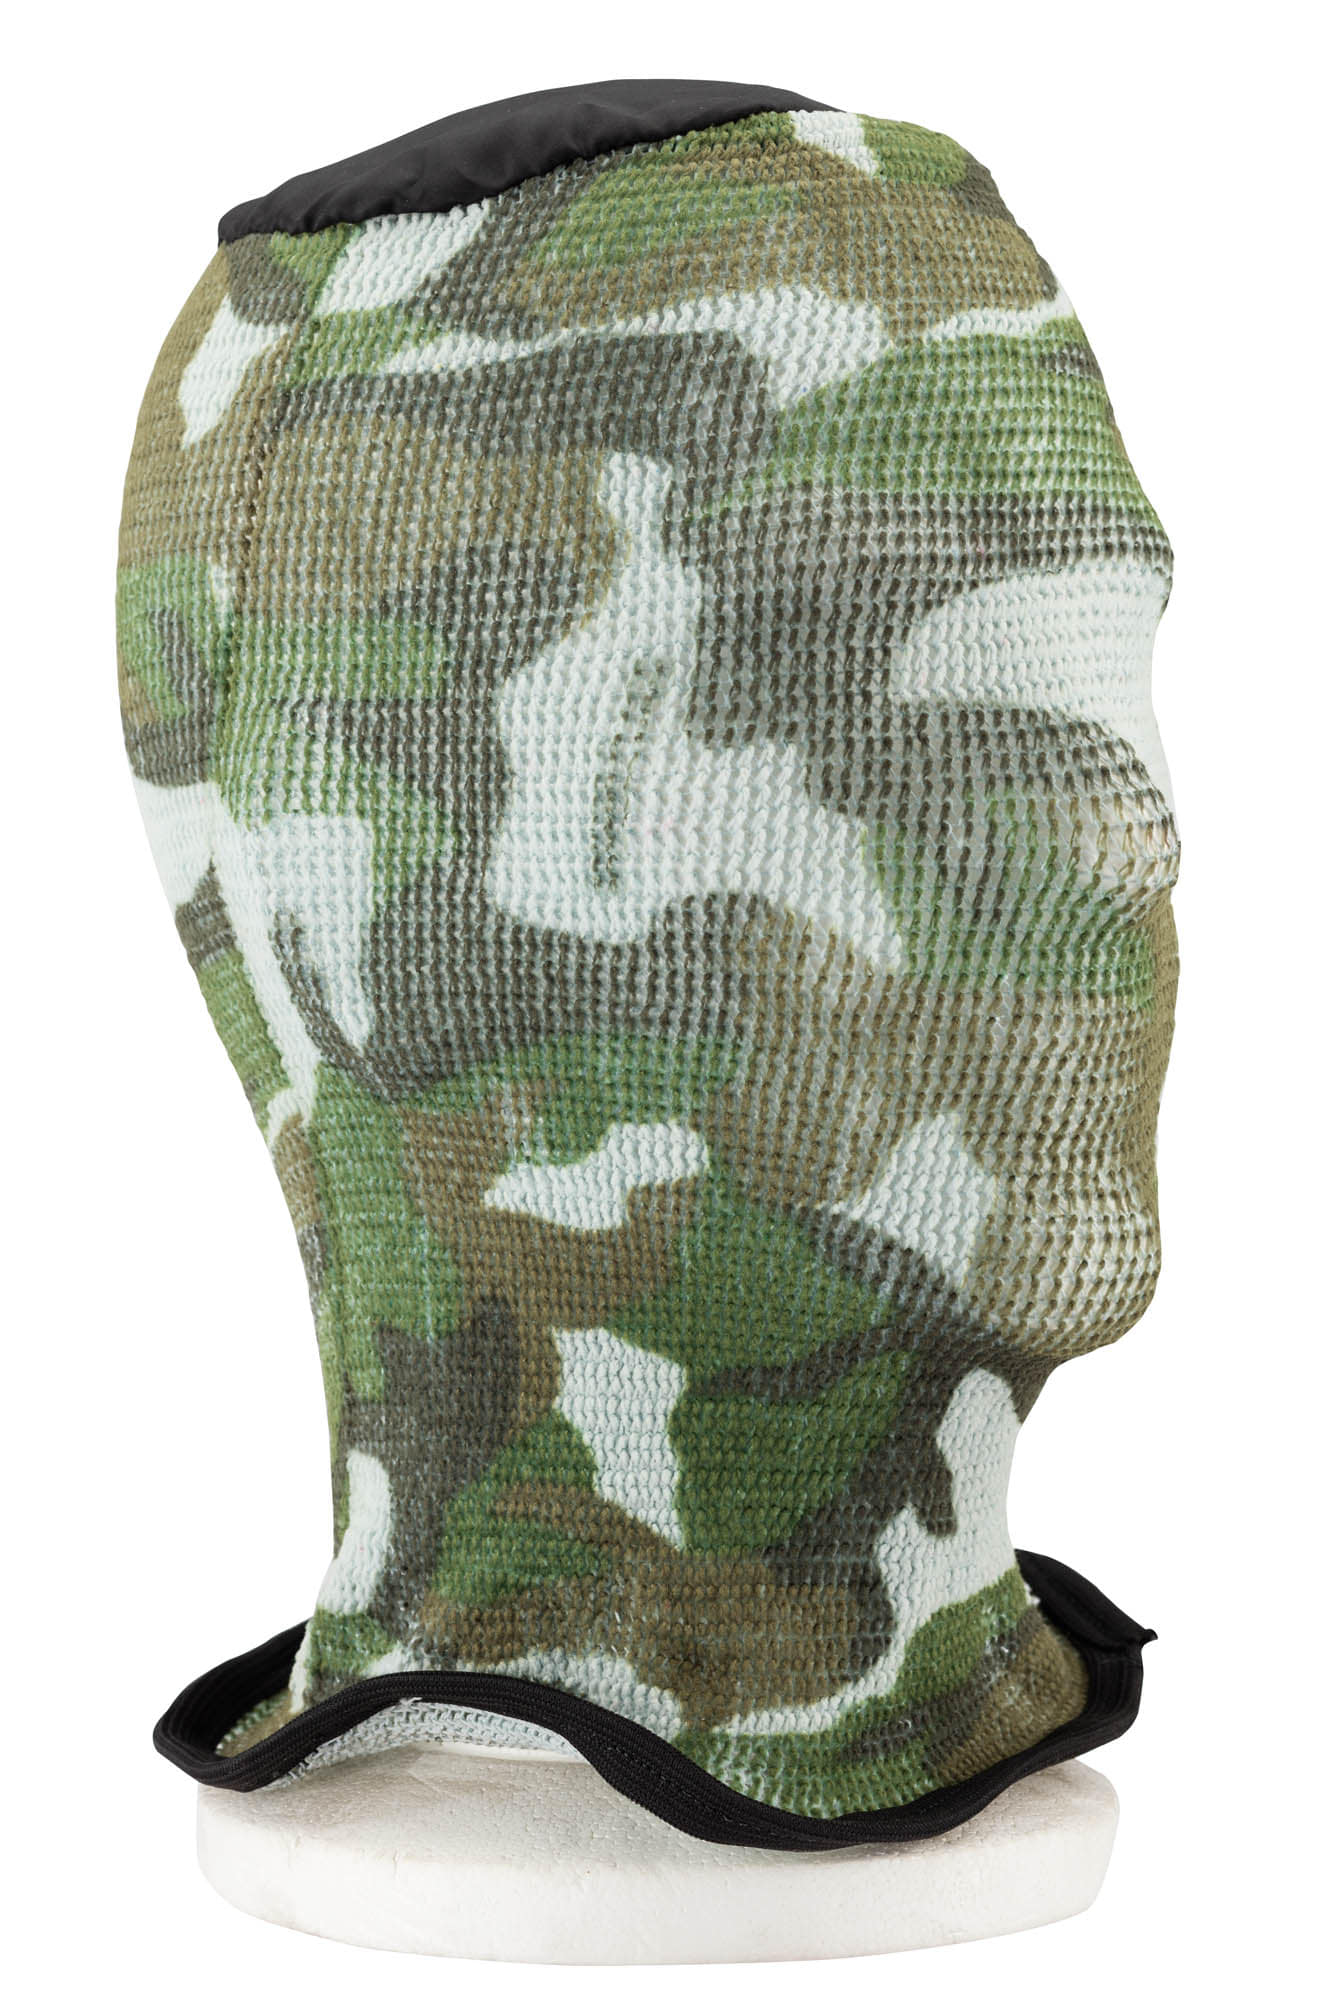 T792250-2-Cagoule filet camouflage - T792250